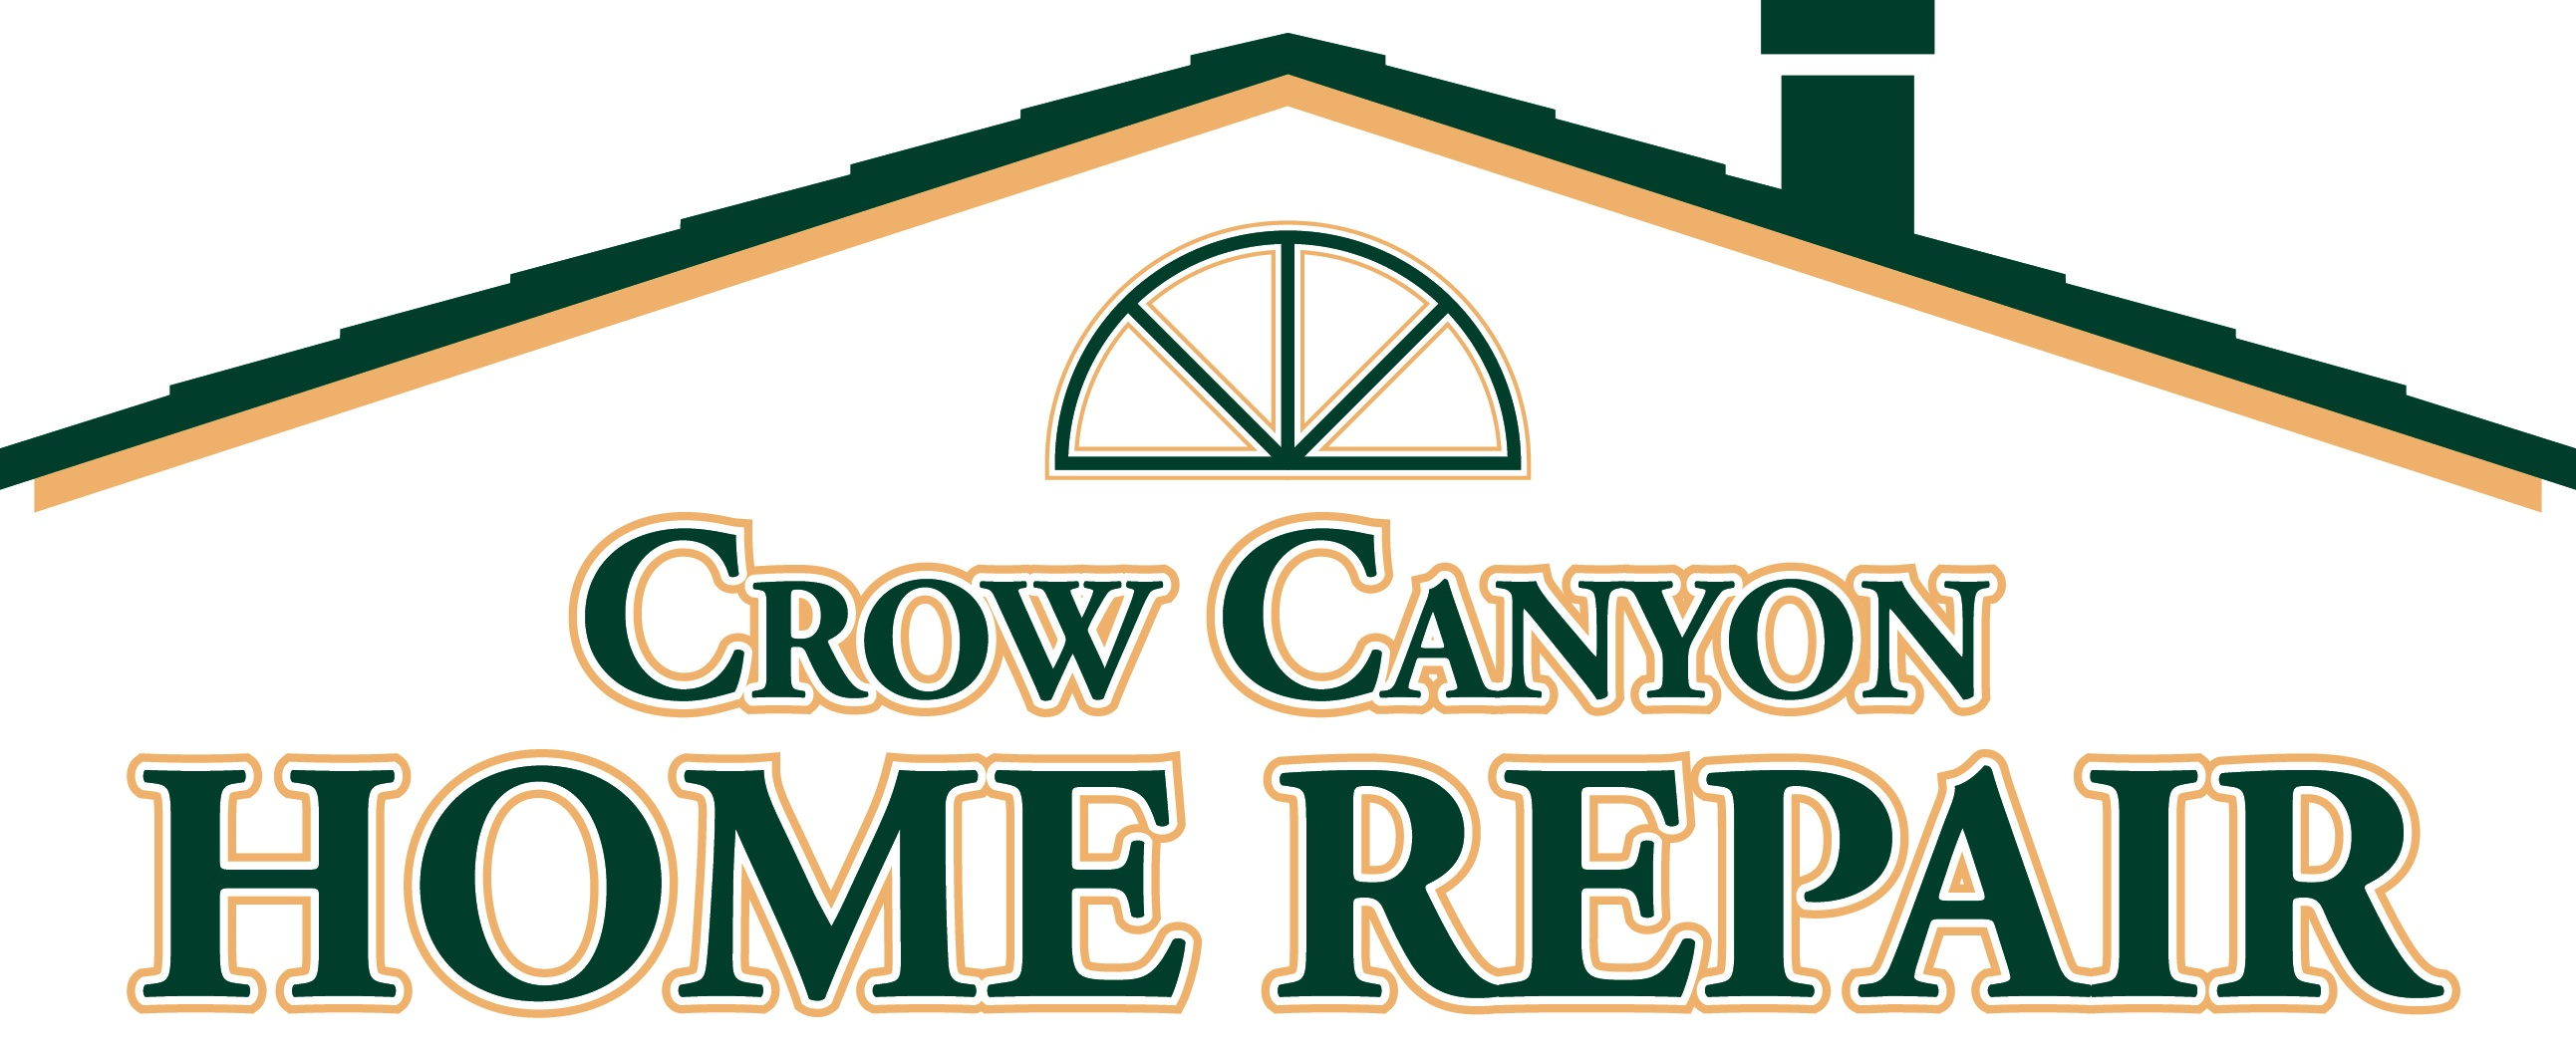 Crow Canyon Home Repair Remodeling